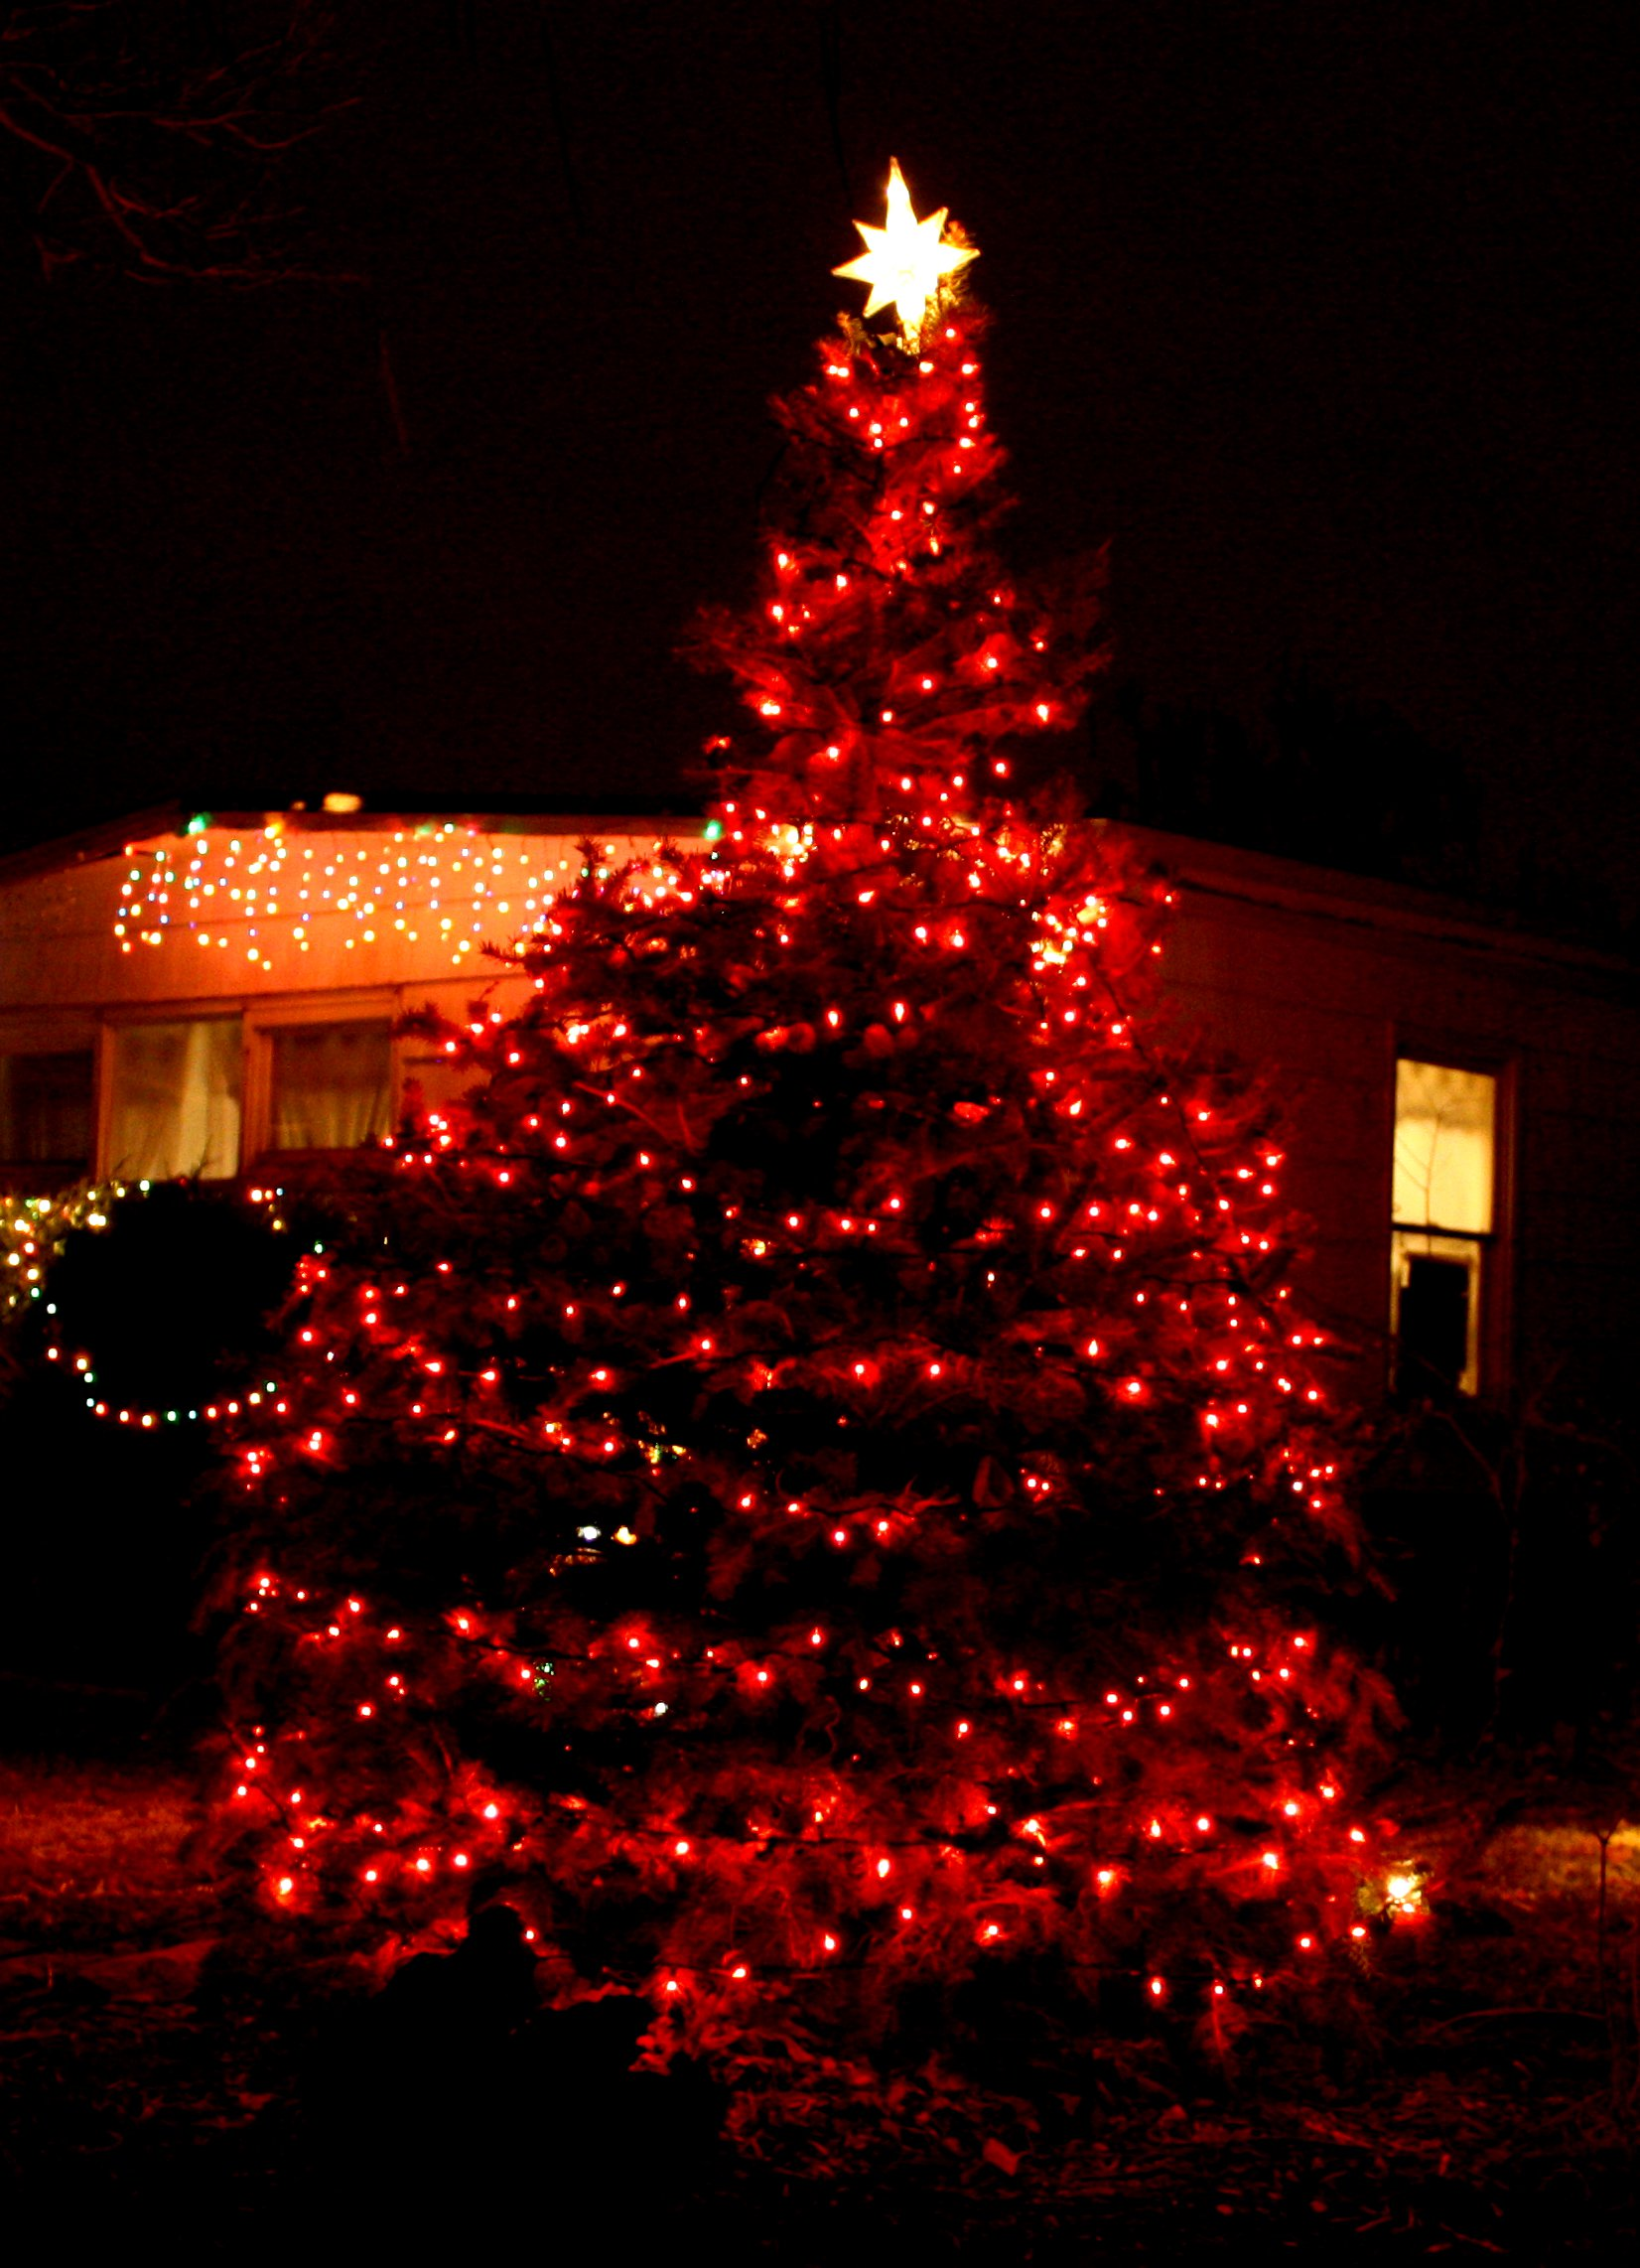 christmas tree with red lights - Christmas Trees With Lights